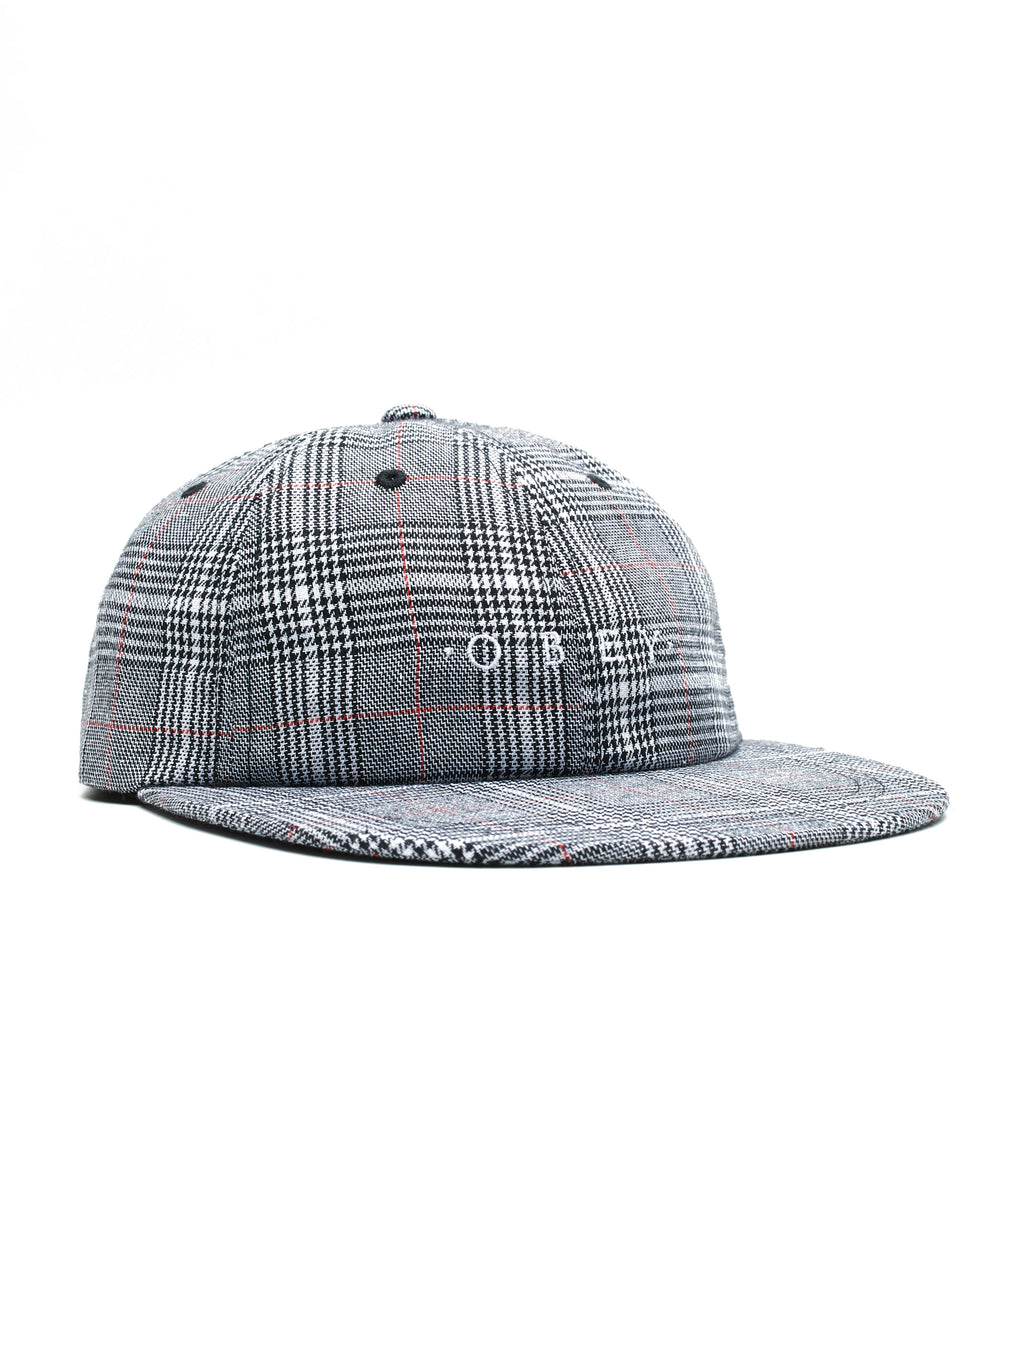 OBEY - Holmes 6 Panel Men's Strapback, White Multi